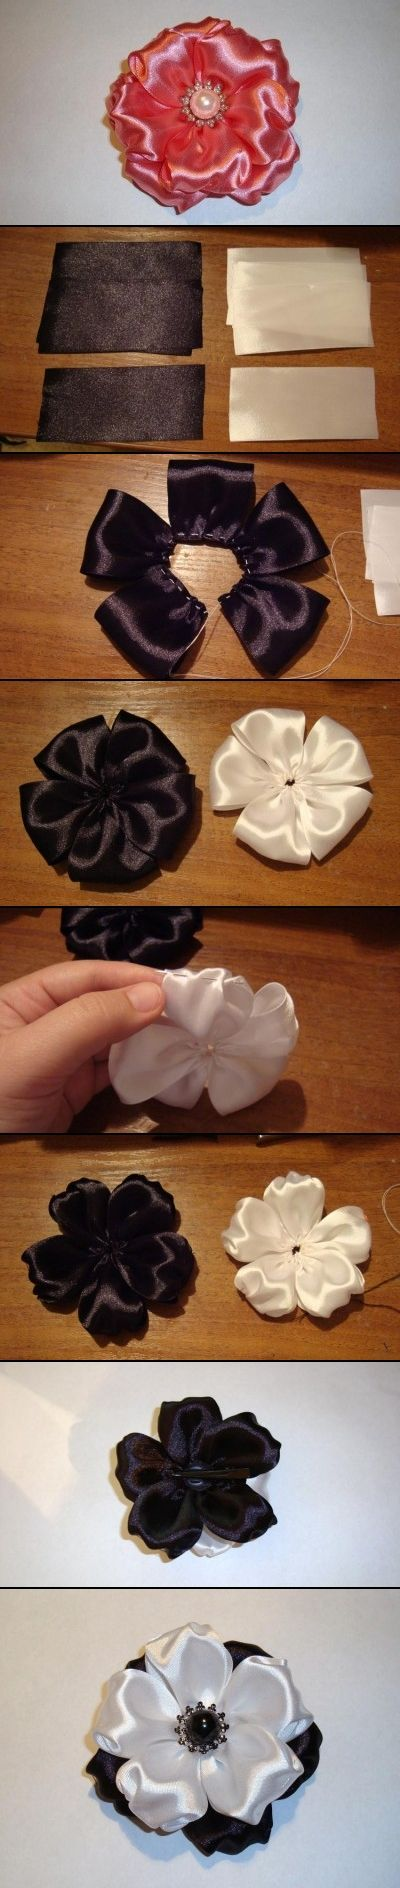 Ribbon flowers.  Really cute with the shirring on the tips of the petals.